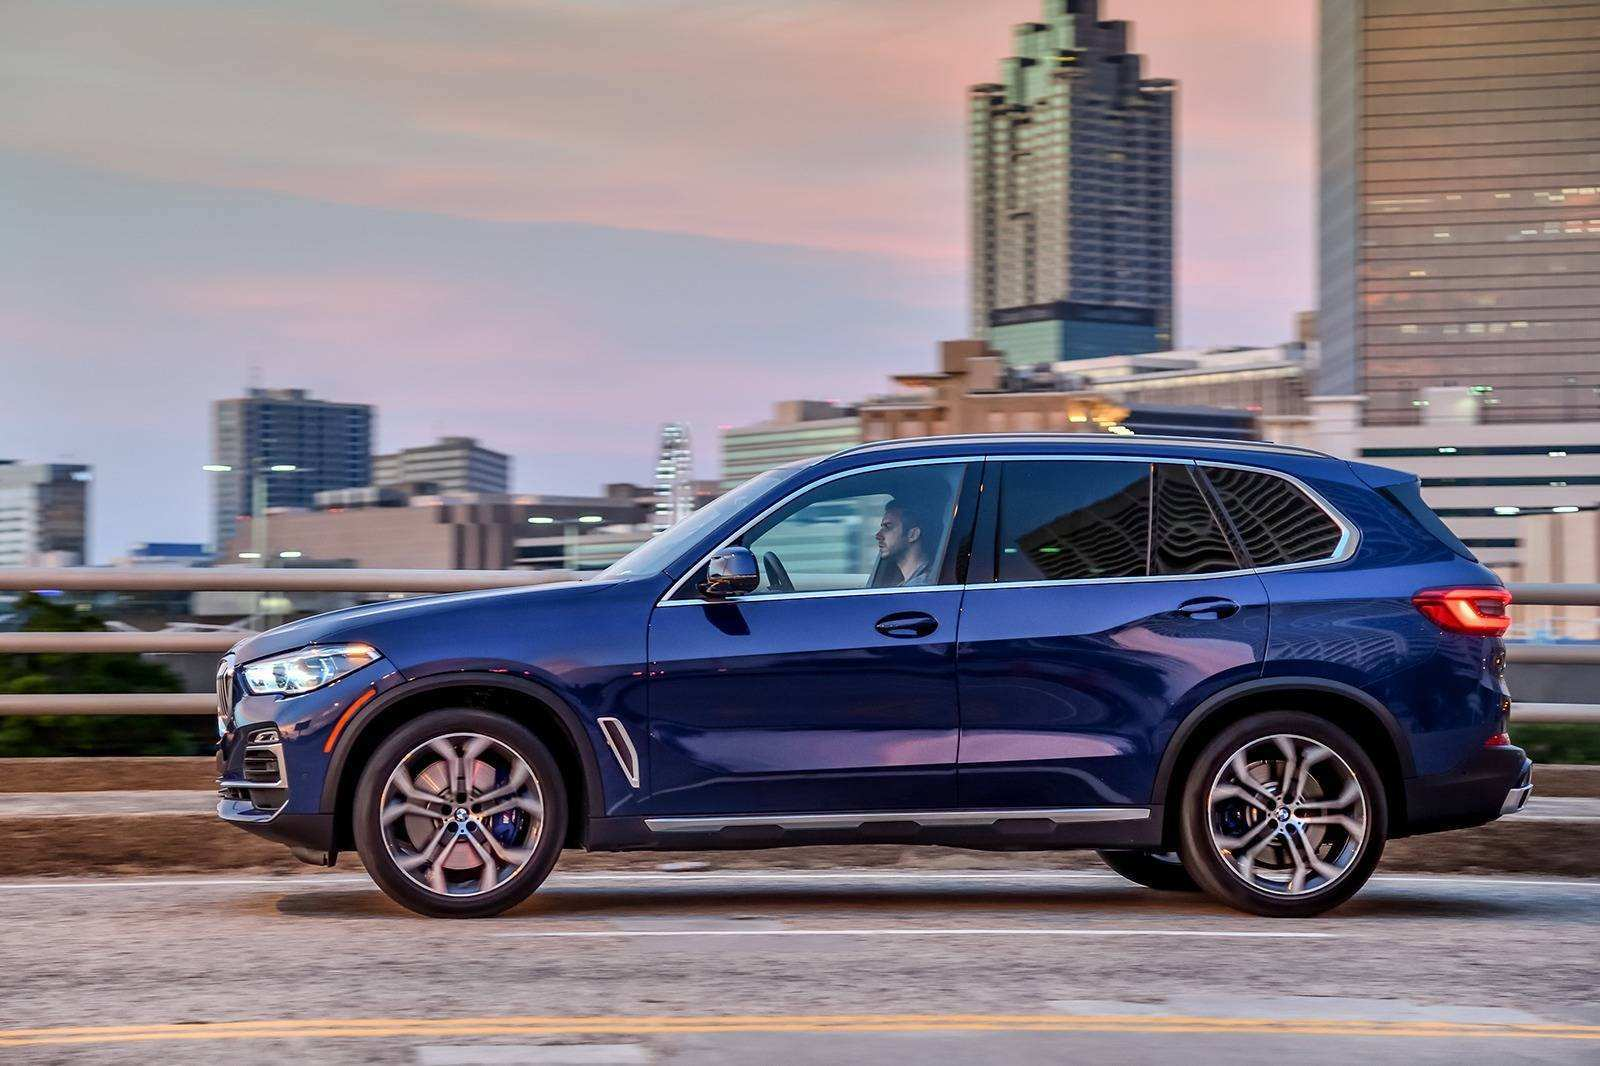 94 All New 2019 Bmw X5 Release Date Overview with 2019 Bmw X5 Release Date